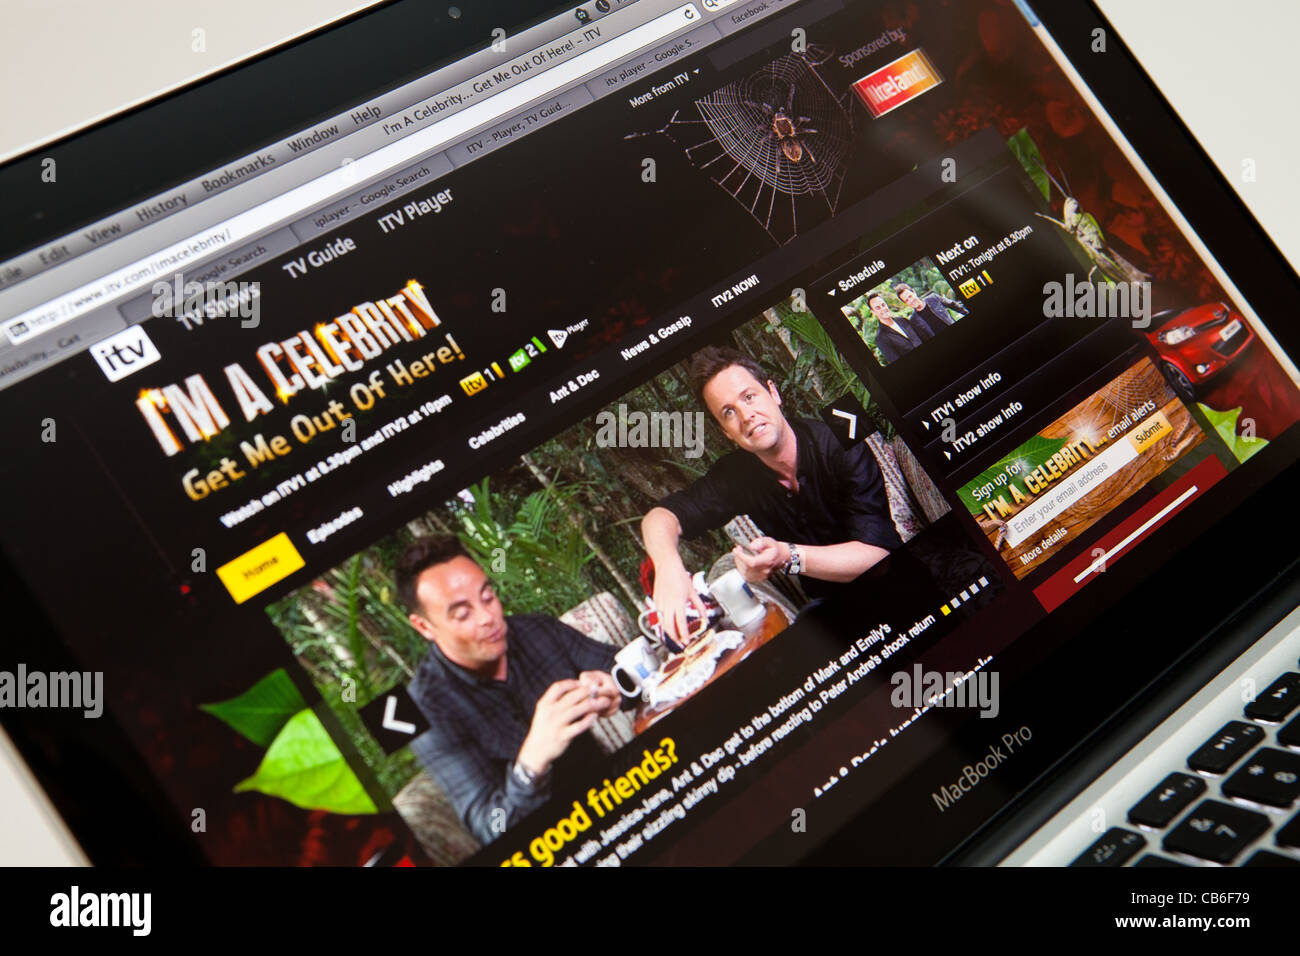 I'm a Celebrity Get Me Out Of Here Tv Show Website Screen shot of web page - Stock Image